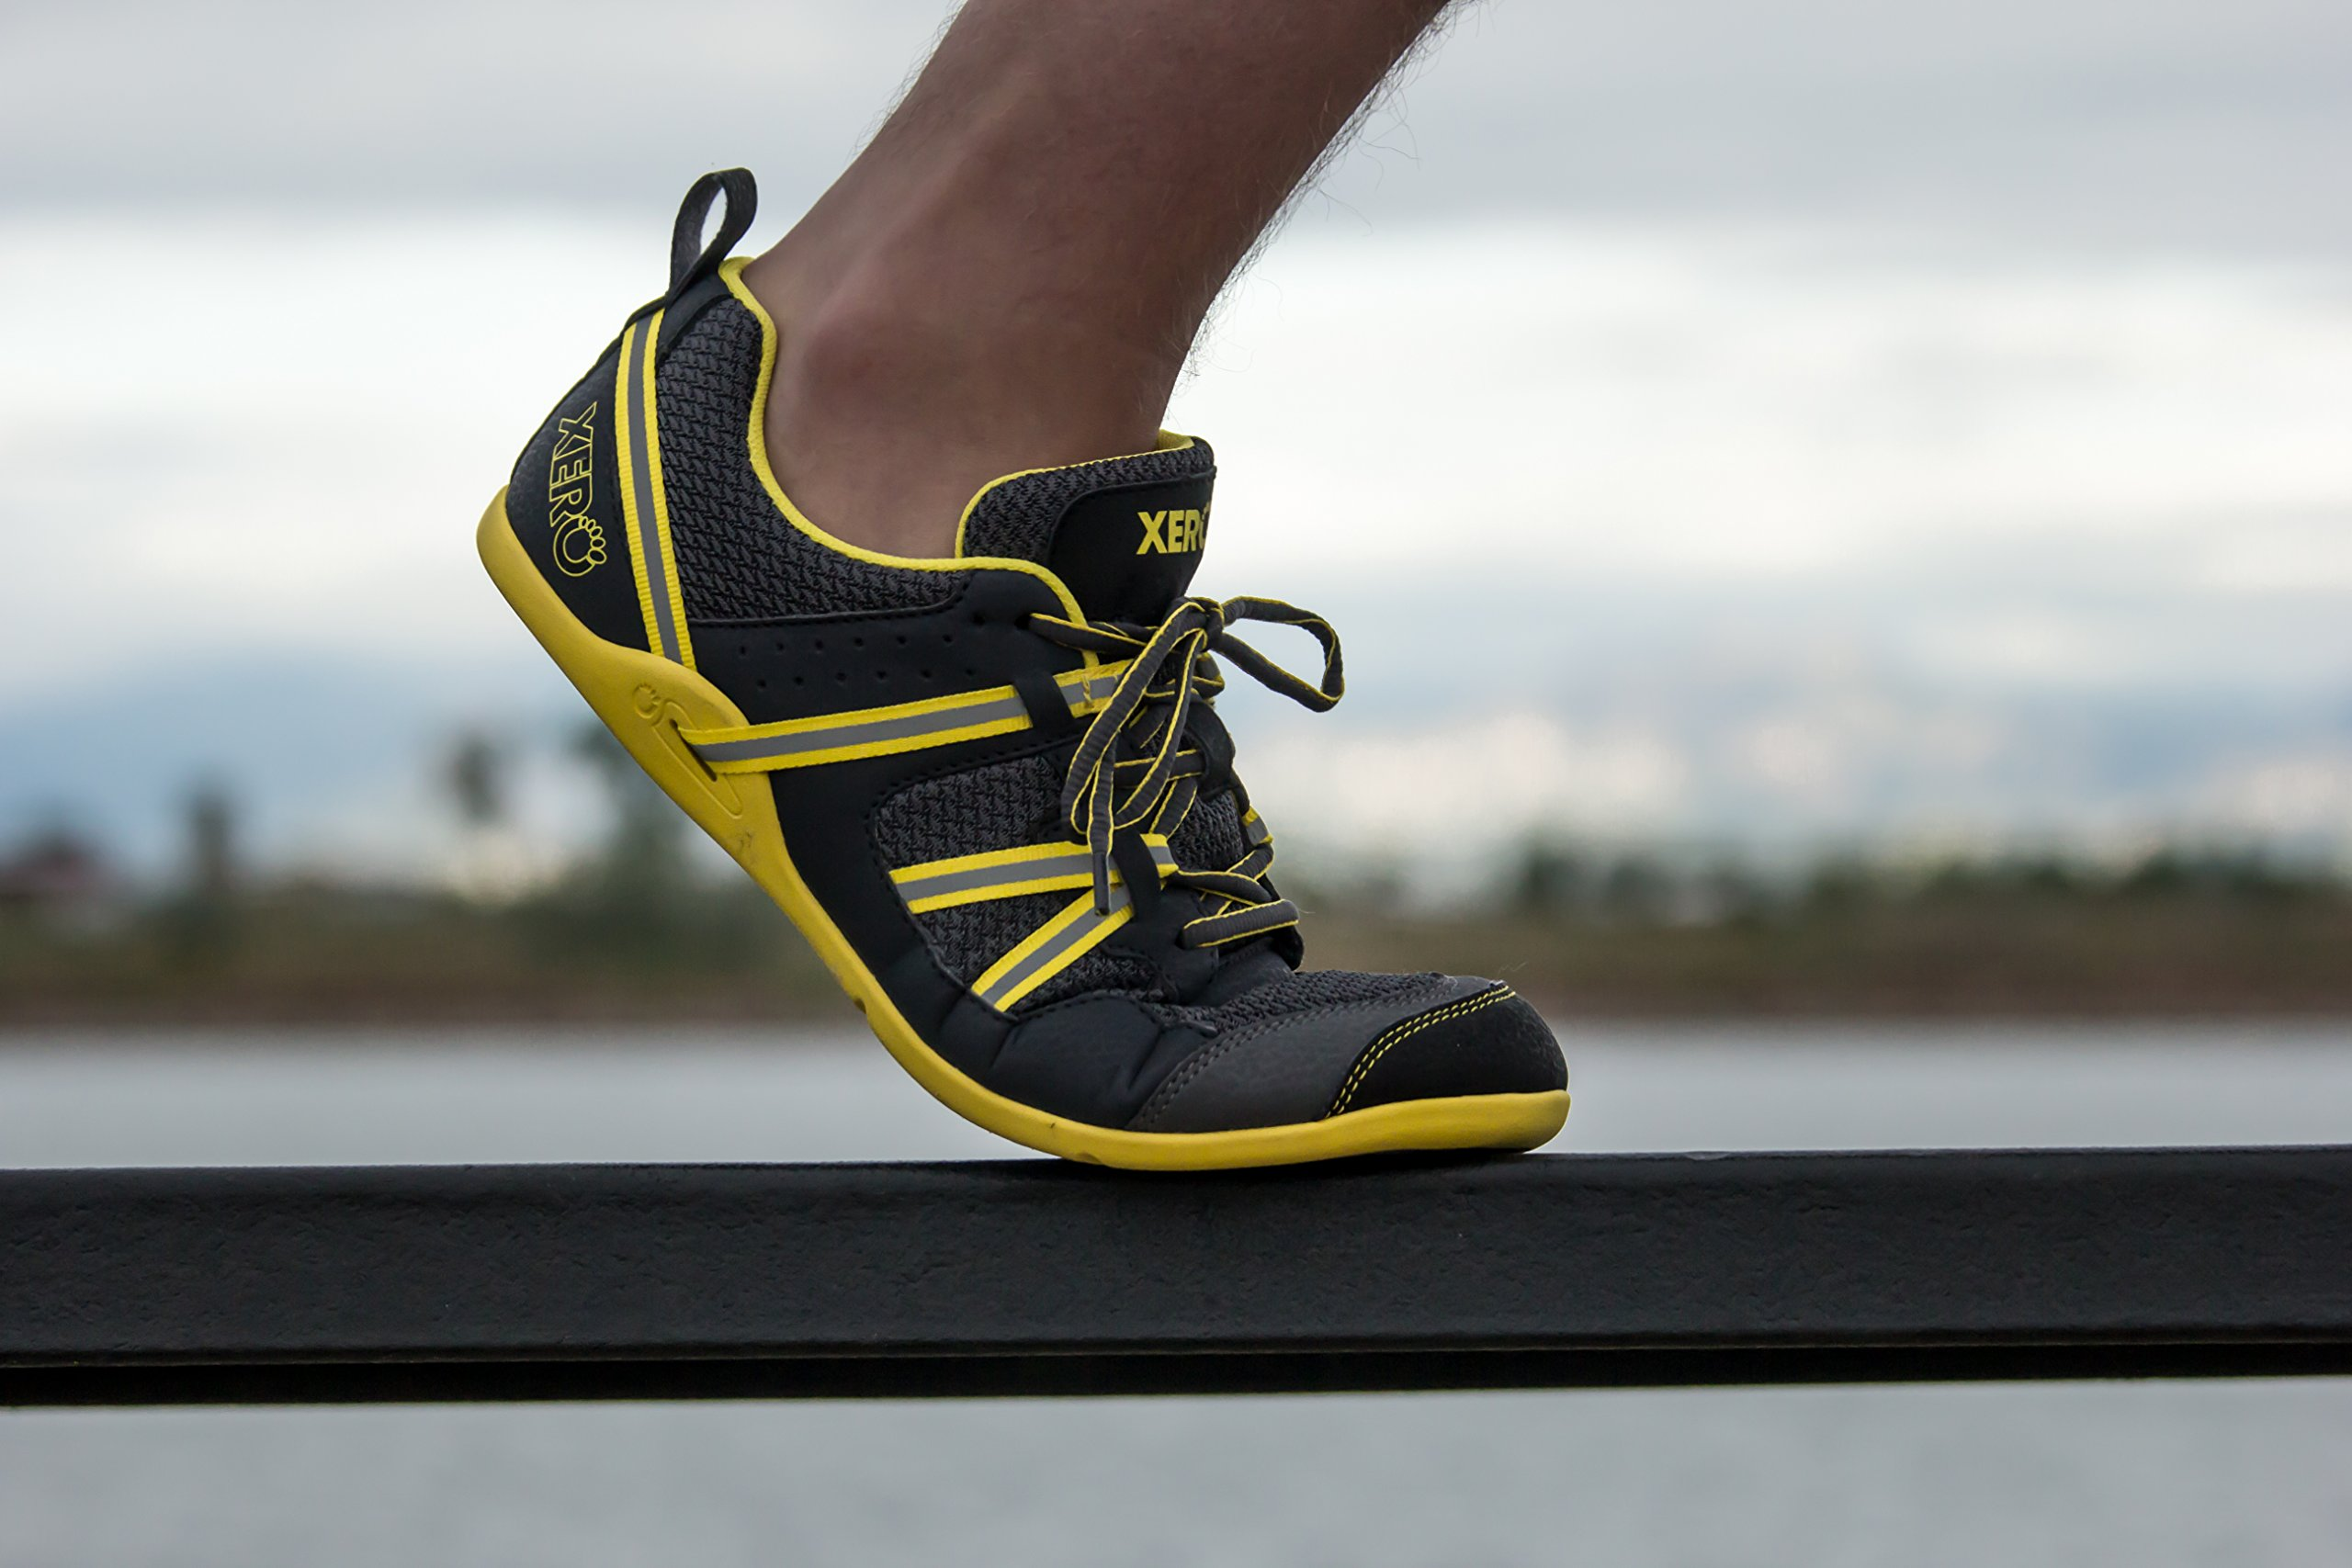 Xero Shoes Prio - Men's Minimalist Barefoot Trail and Road Running Shoe - Fitness, Athletic Zero Drop Sneaker - True Yellow by Xero Shoes (Image #8)